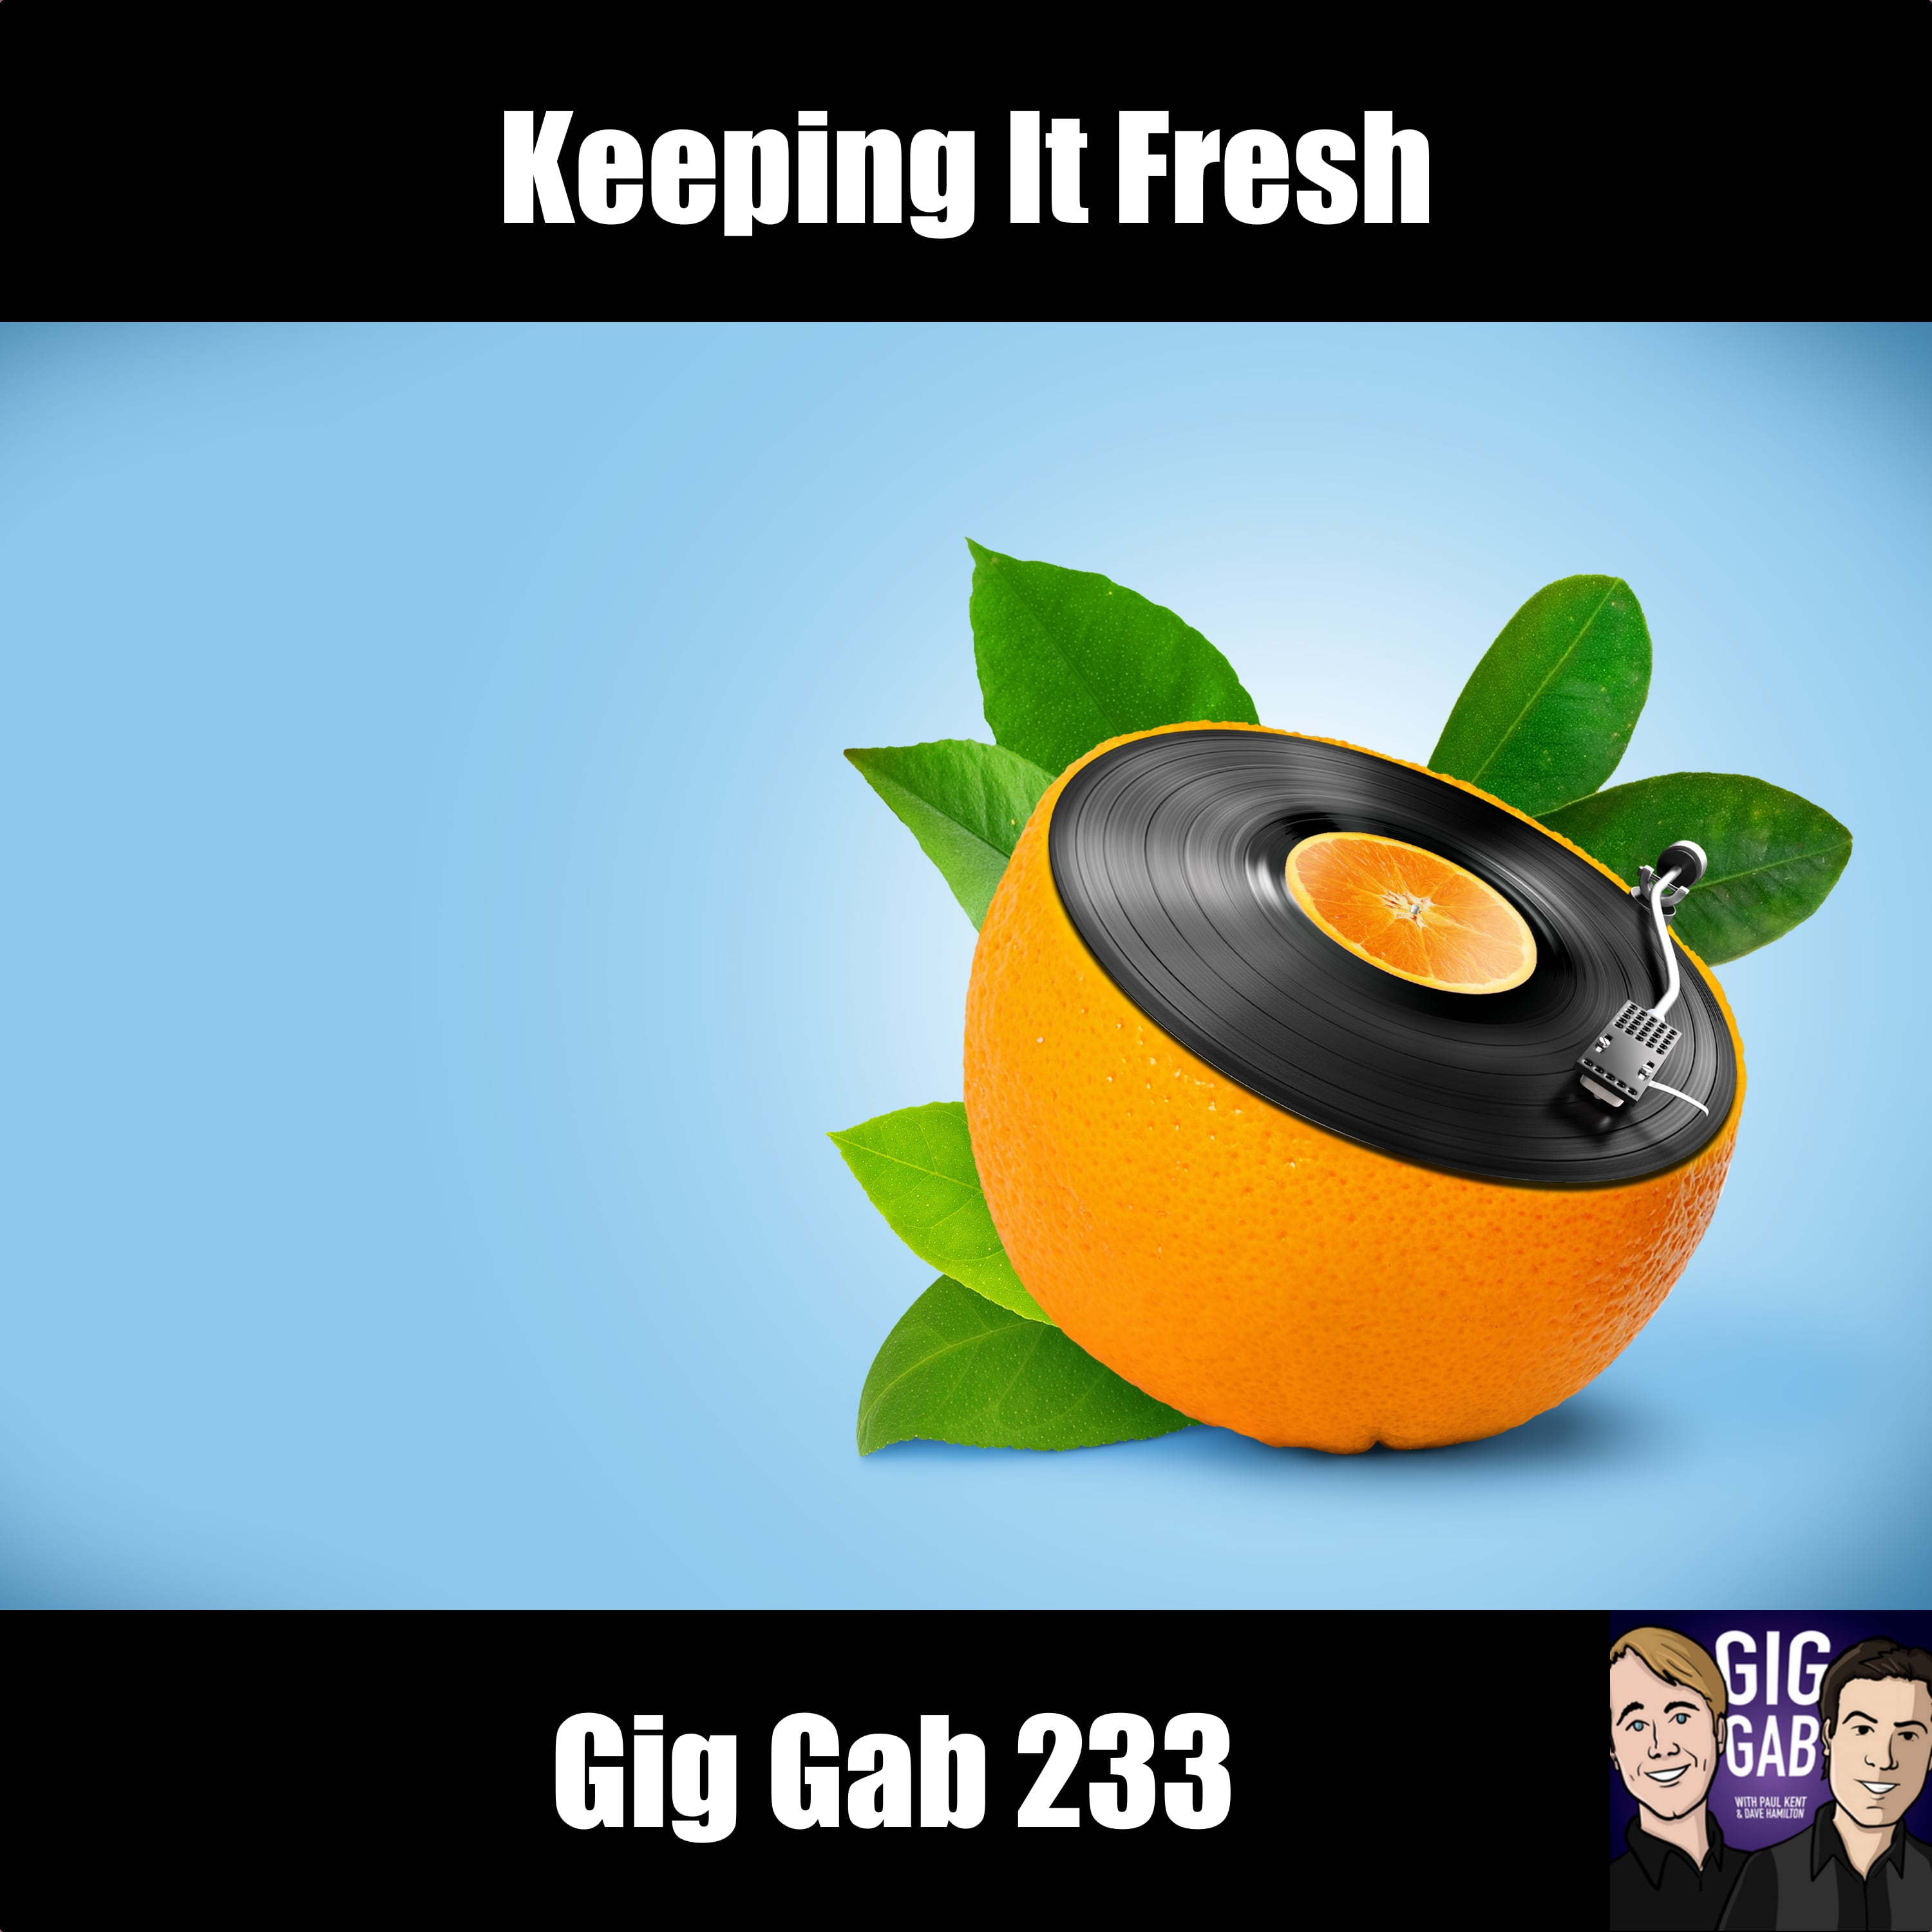 Keeping it Fresh – Gig Gab 233